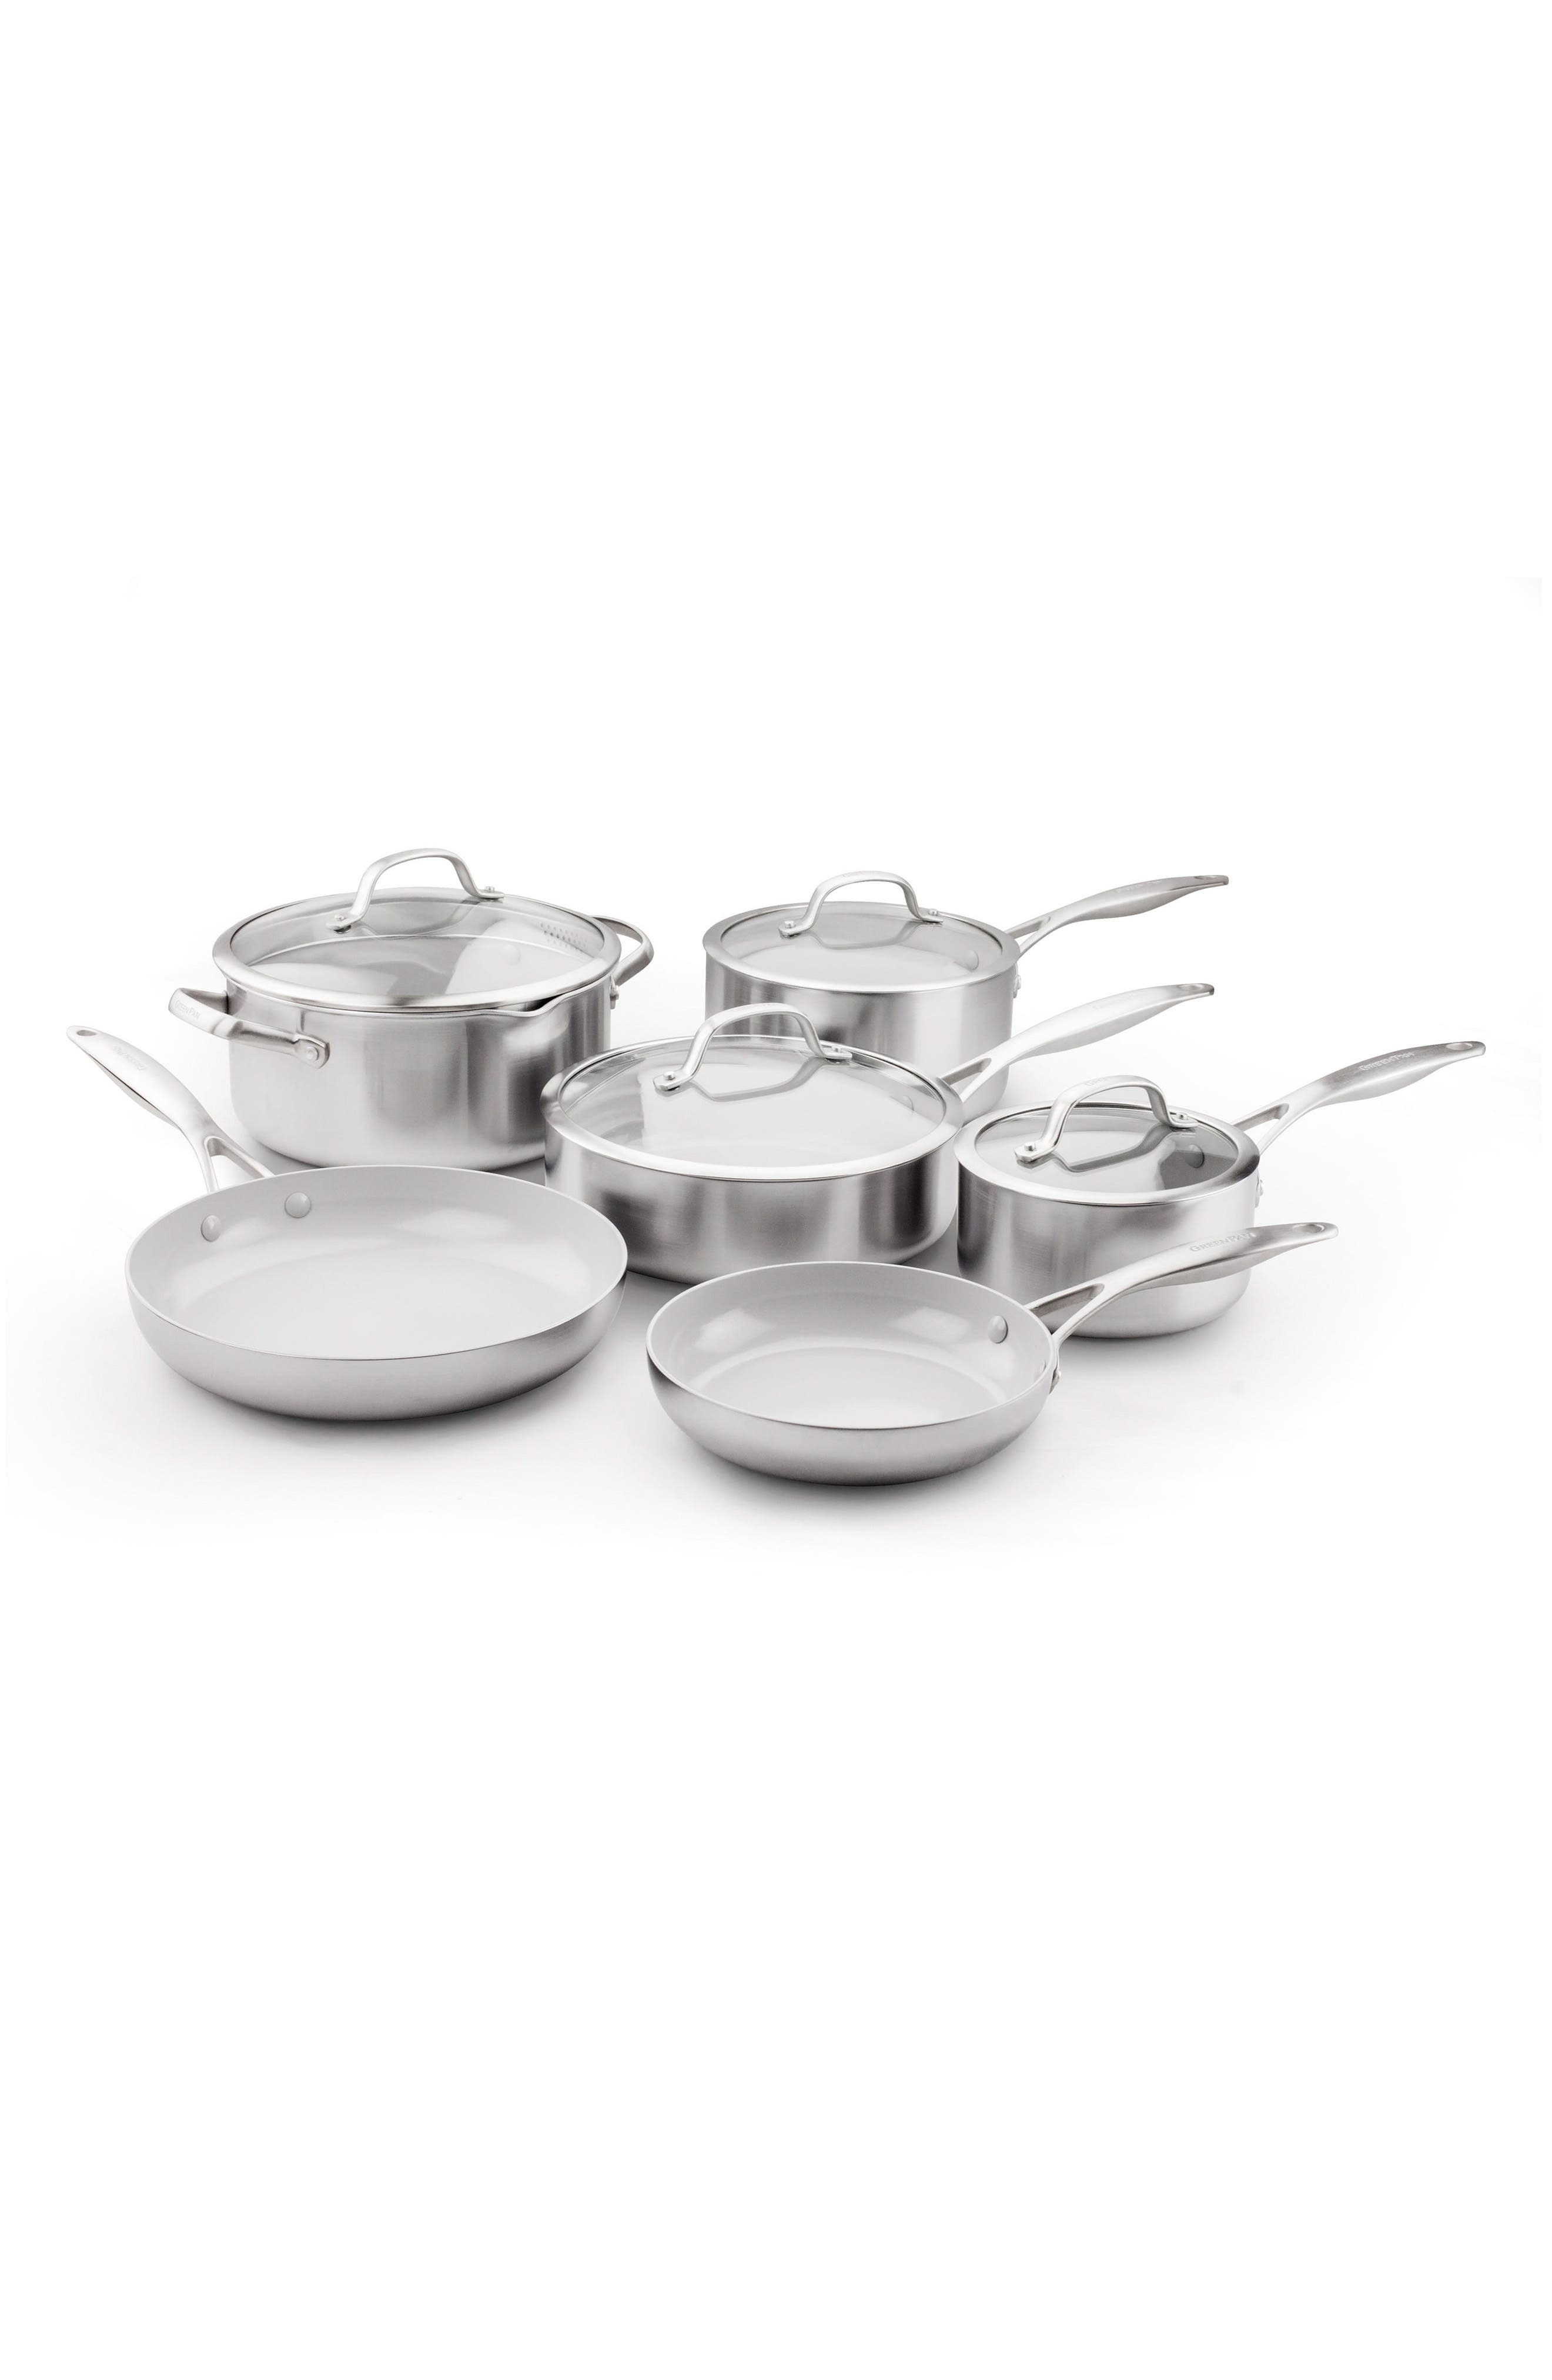 Venice Pro 10-Piece Multilayer Stainless Steel Ceramic Nonstick Cookware Set,                         Main,                         color, Stainless Steel